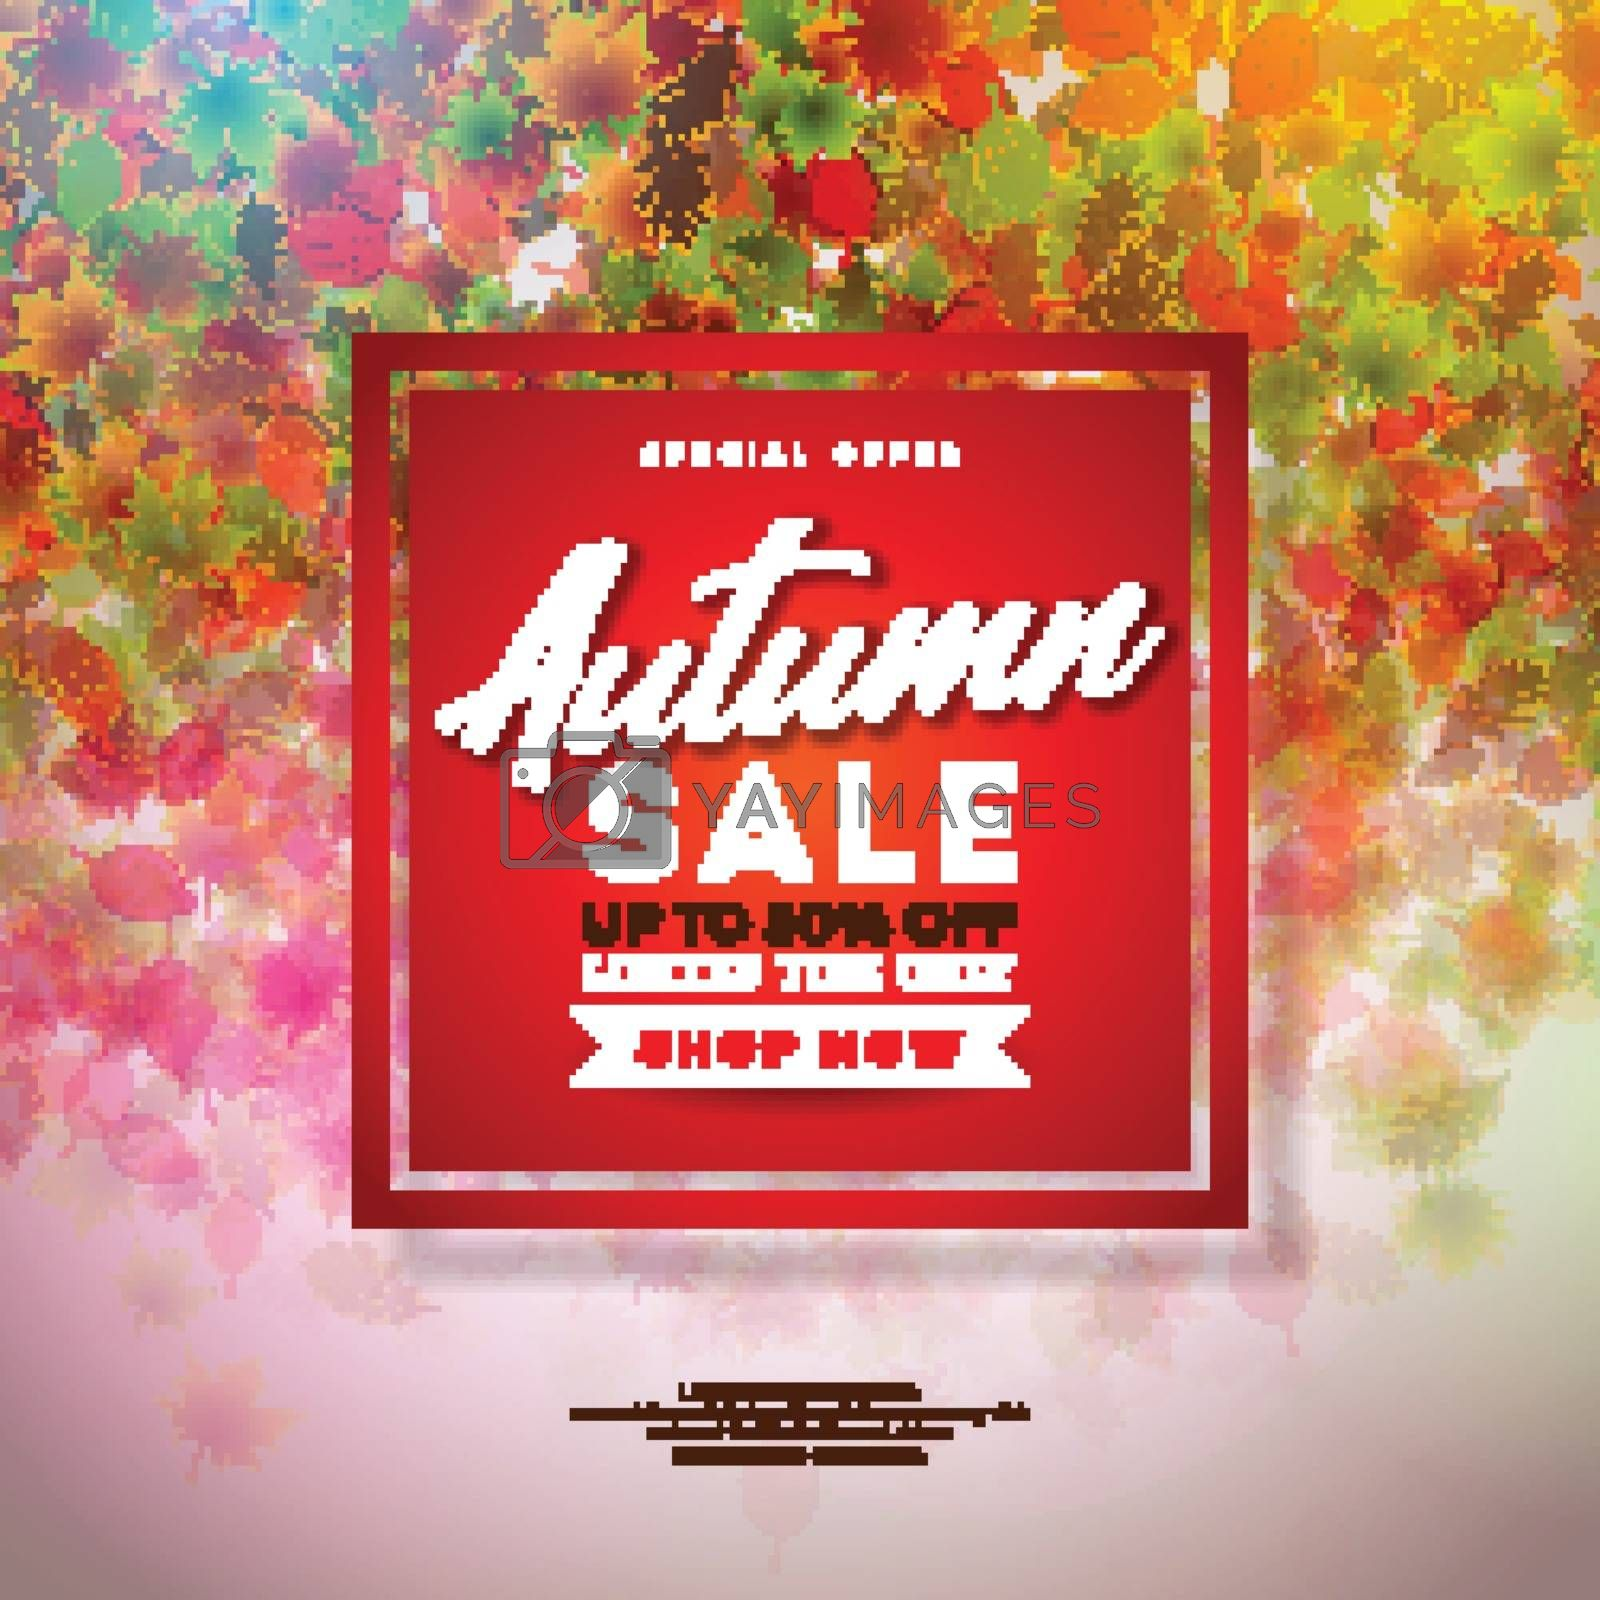 Autumn Sale Design with Colorful Falling Leaves and Lettering on Red Background. Autumnal Vector Illustration with Special Offer Typography Elements for Coupon, Voucher, Banner, Flyer, Promotional Poster or Greeting Card